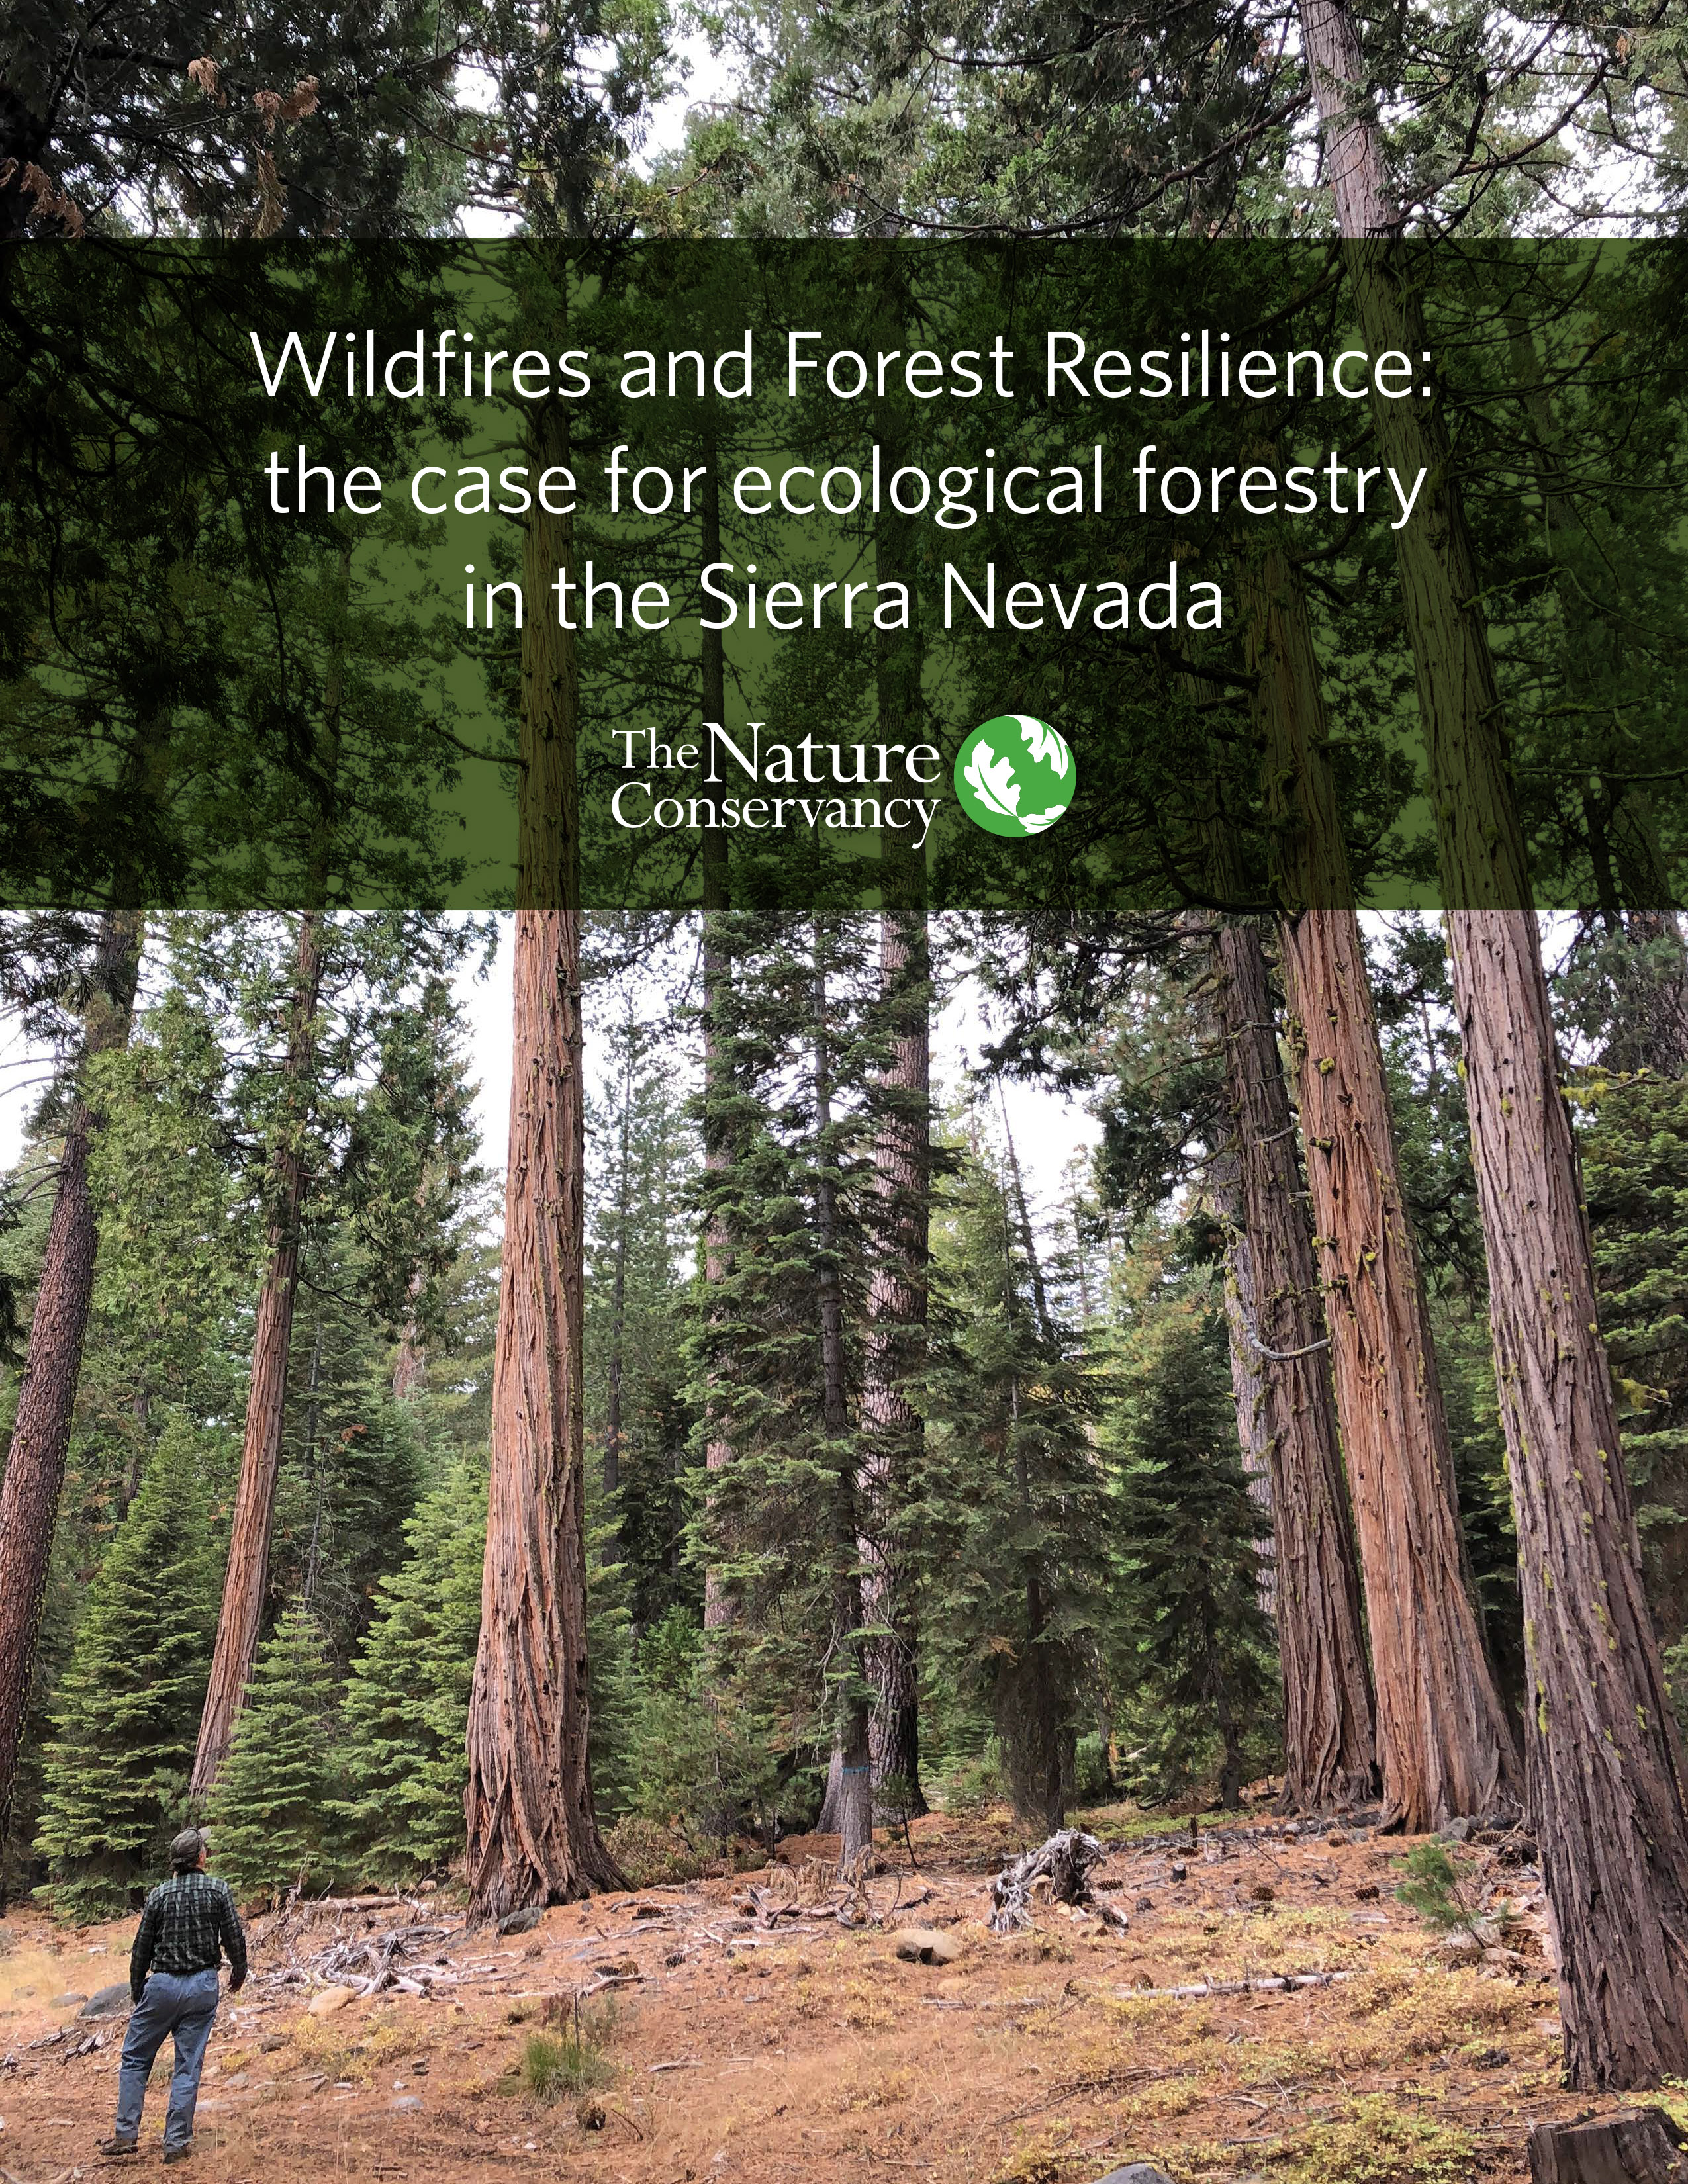 The case for ecological forestry in the Sierra Nevada.